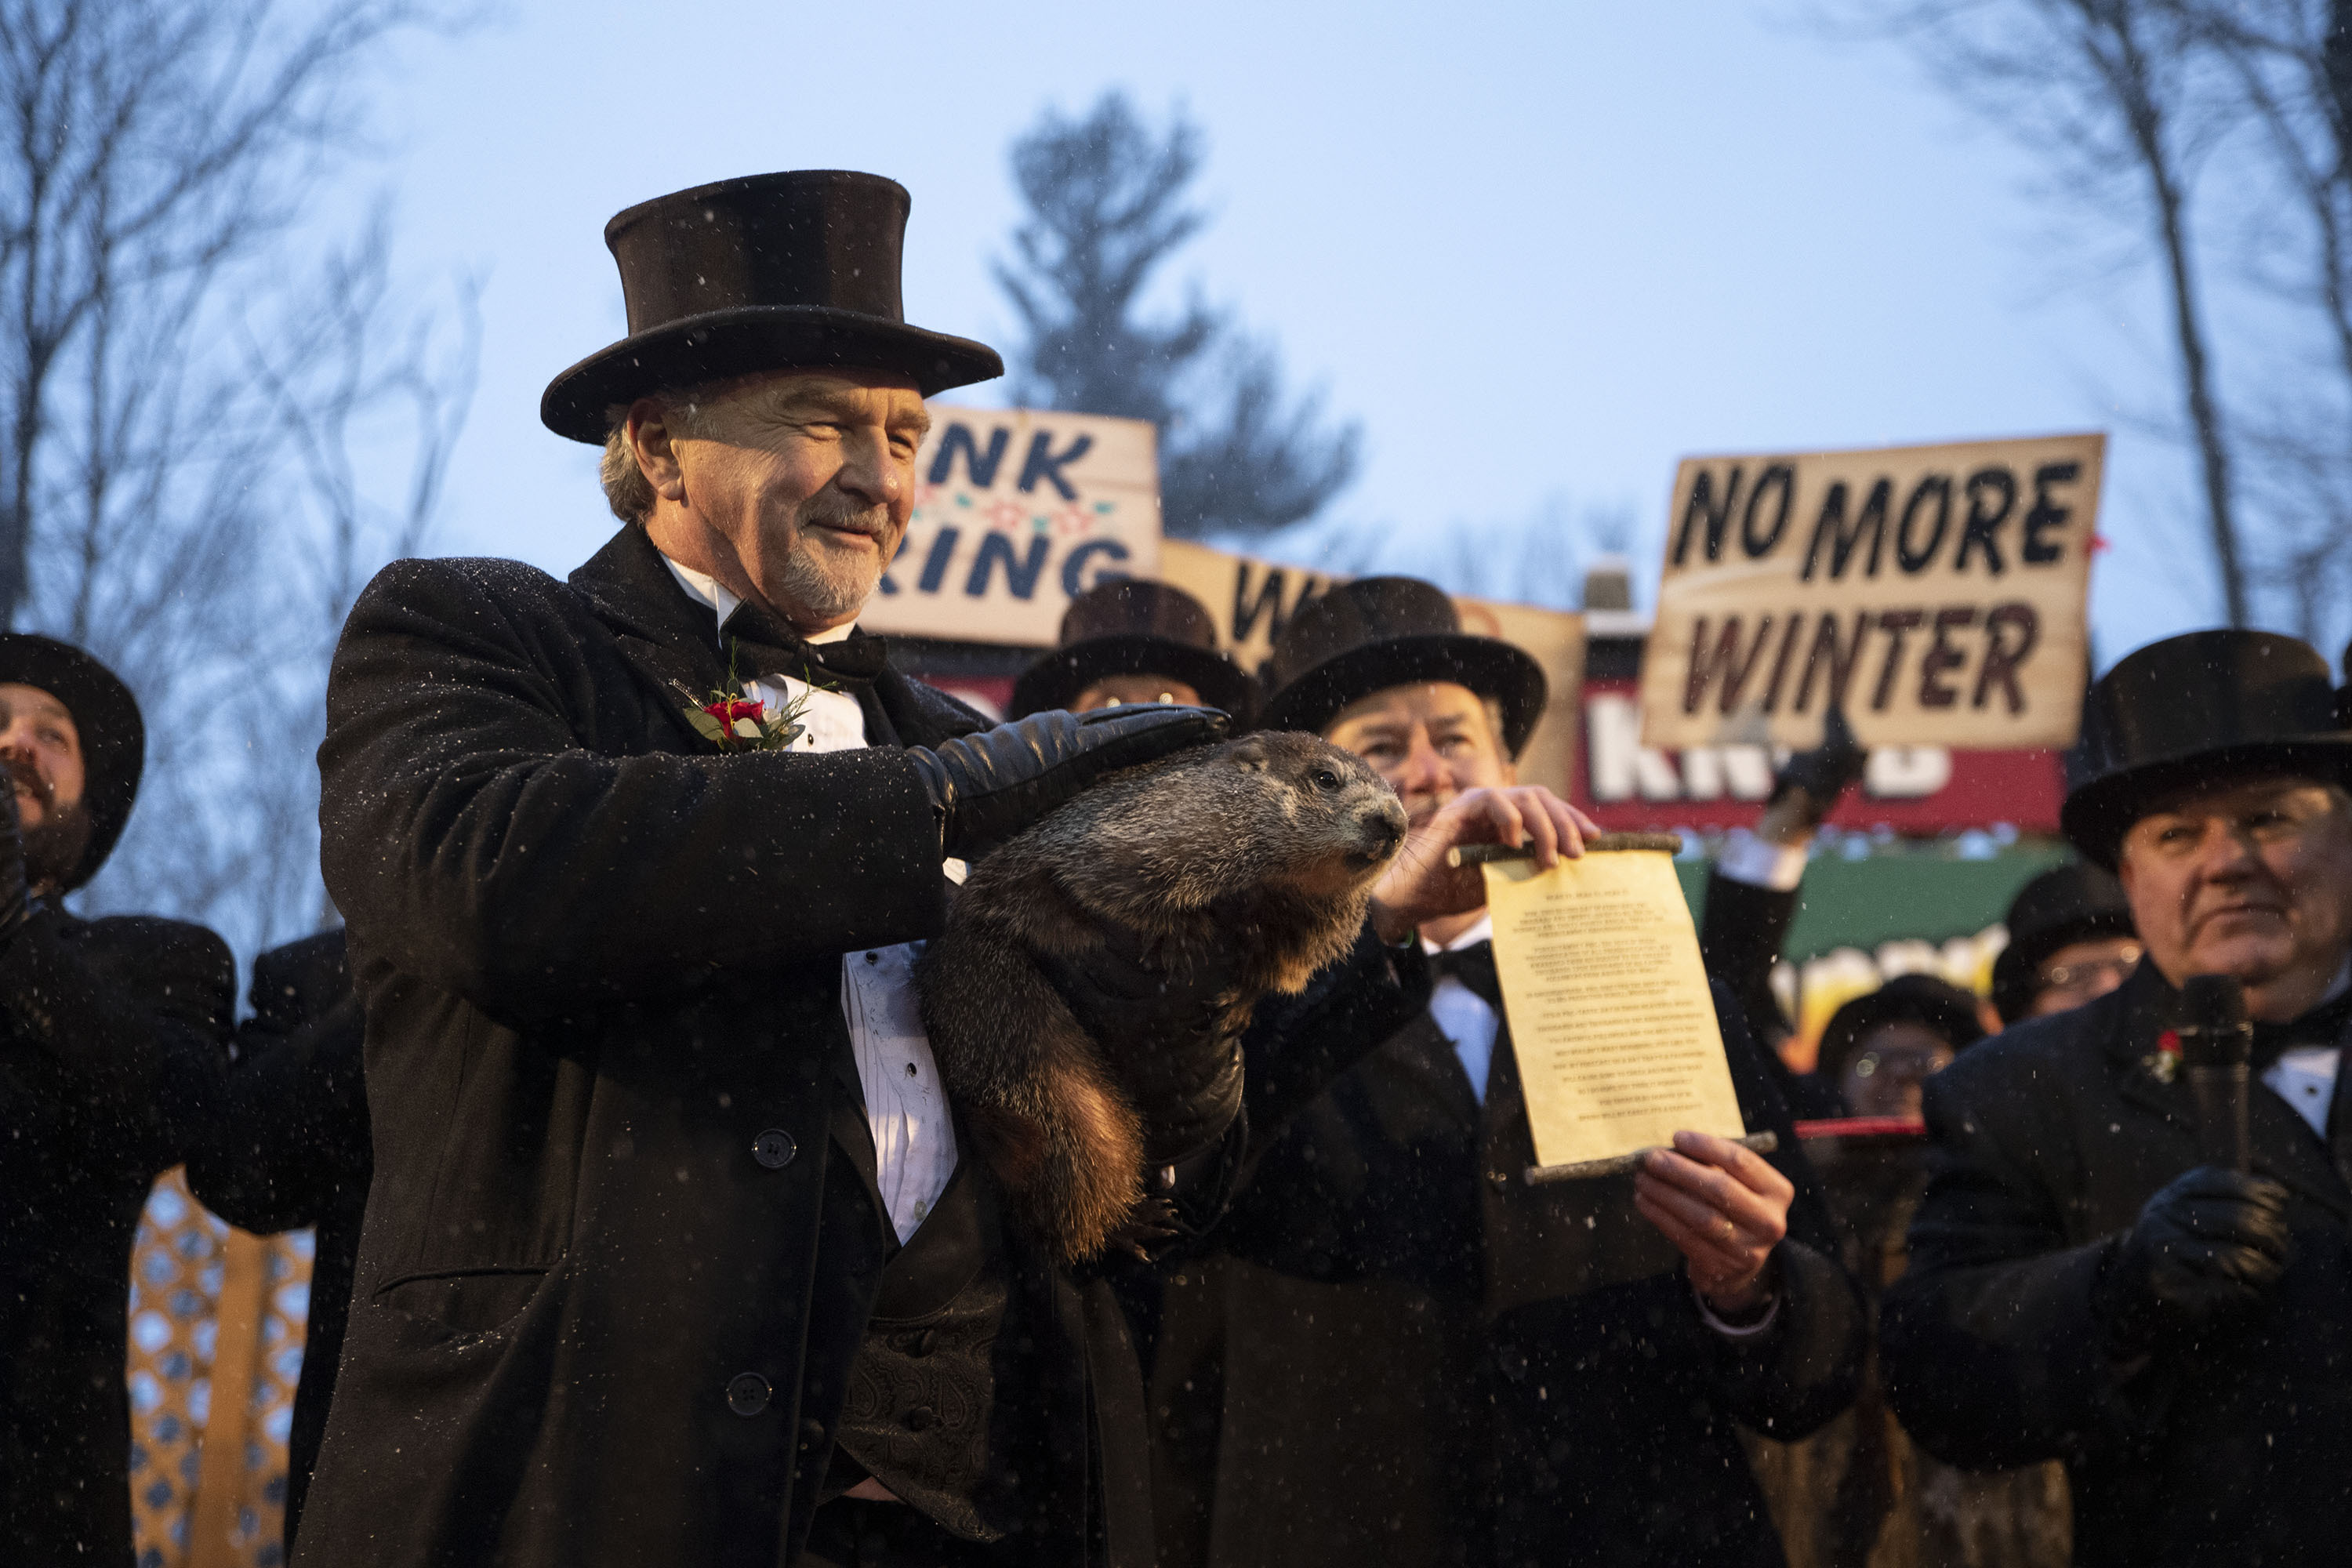 Groundhog Day S Punxsutawney Phil Predicts An Early Spring